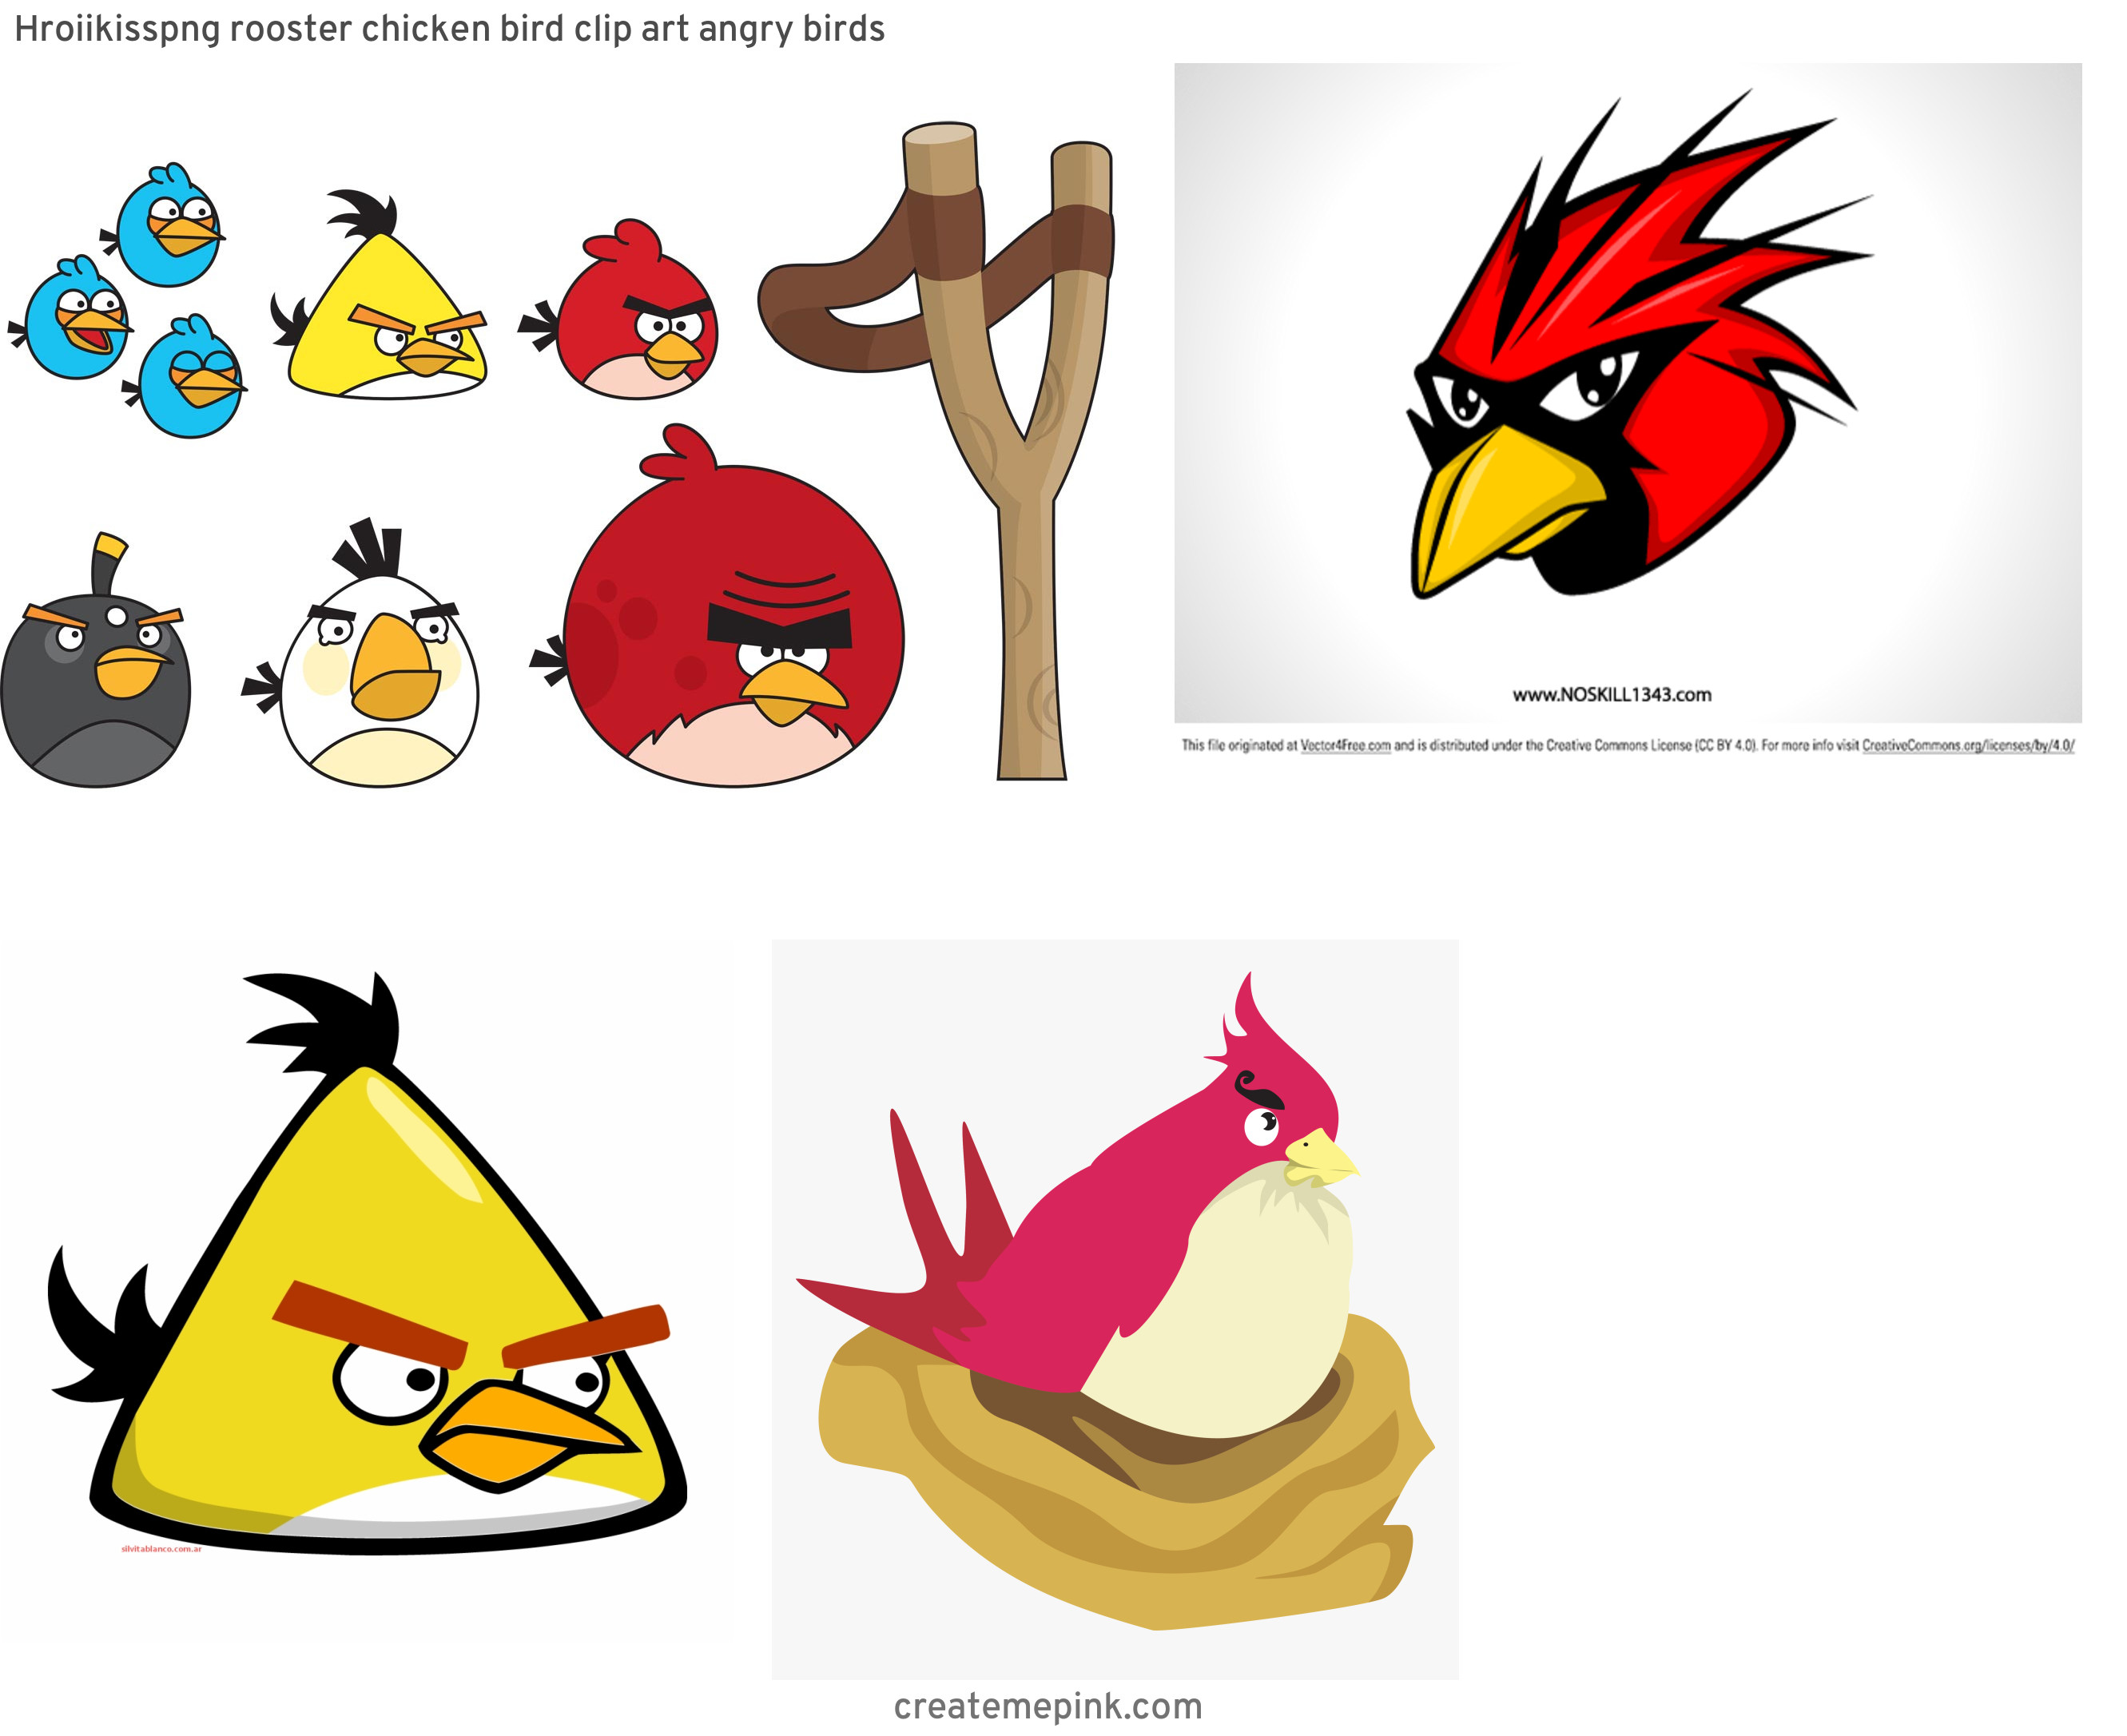 Red Angry Birds Vector: Hroiikisspng Rooster Chicken Bird Clip Art Angry Birds